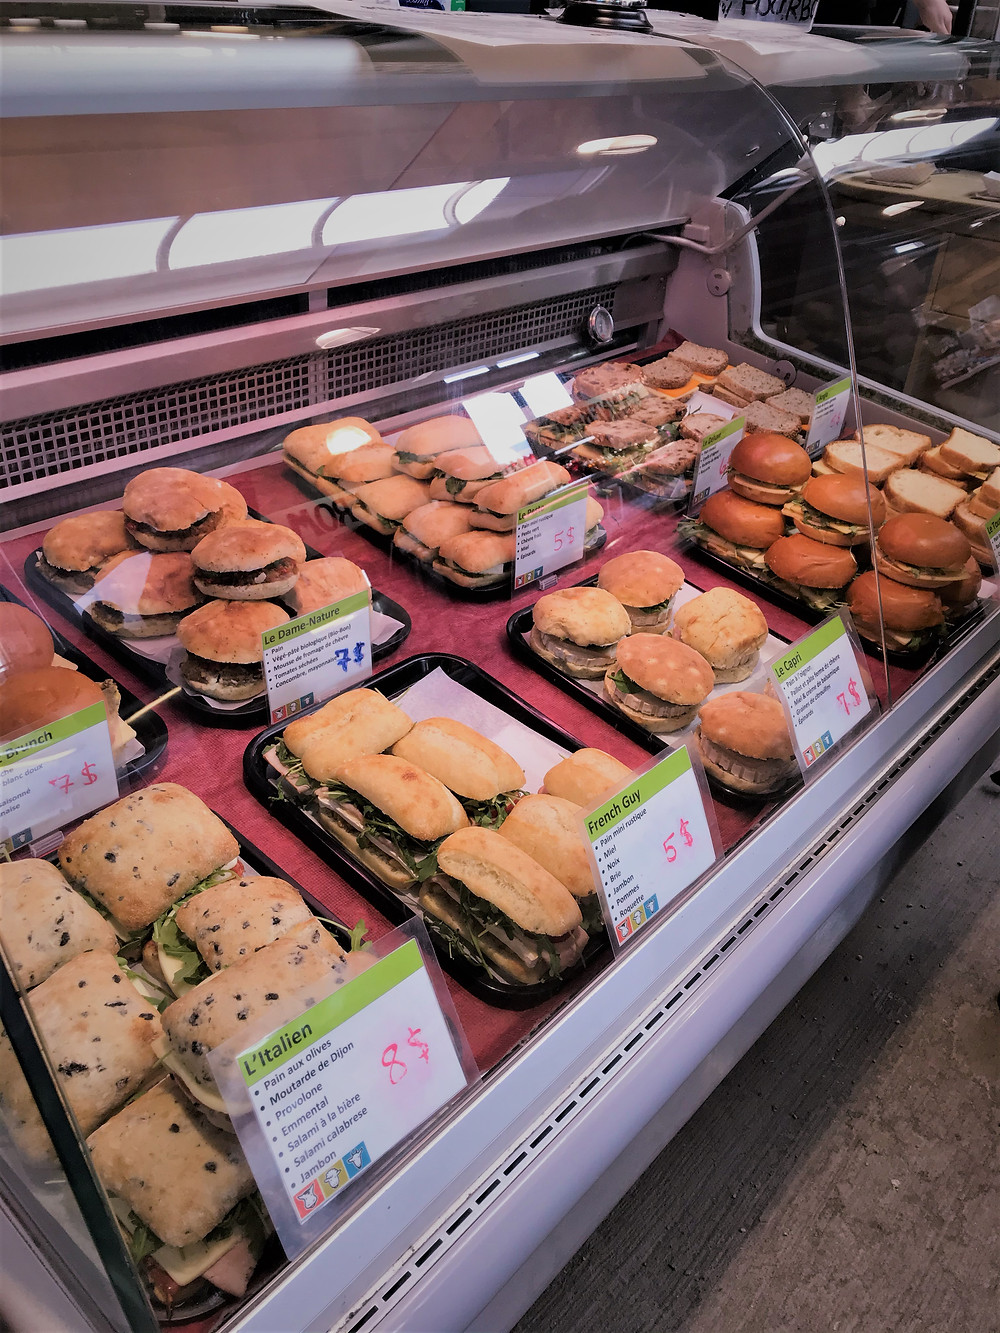 Grilled cheese options at Marche Jean Talon